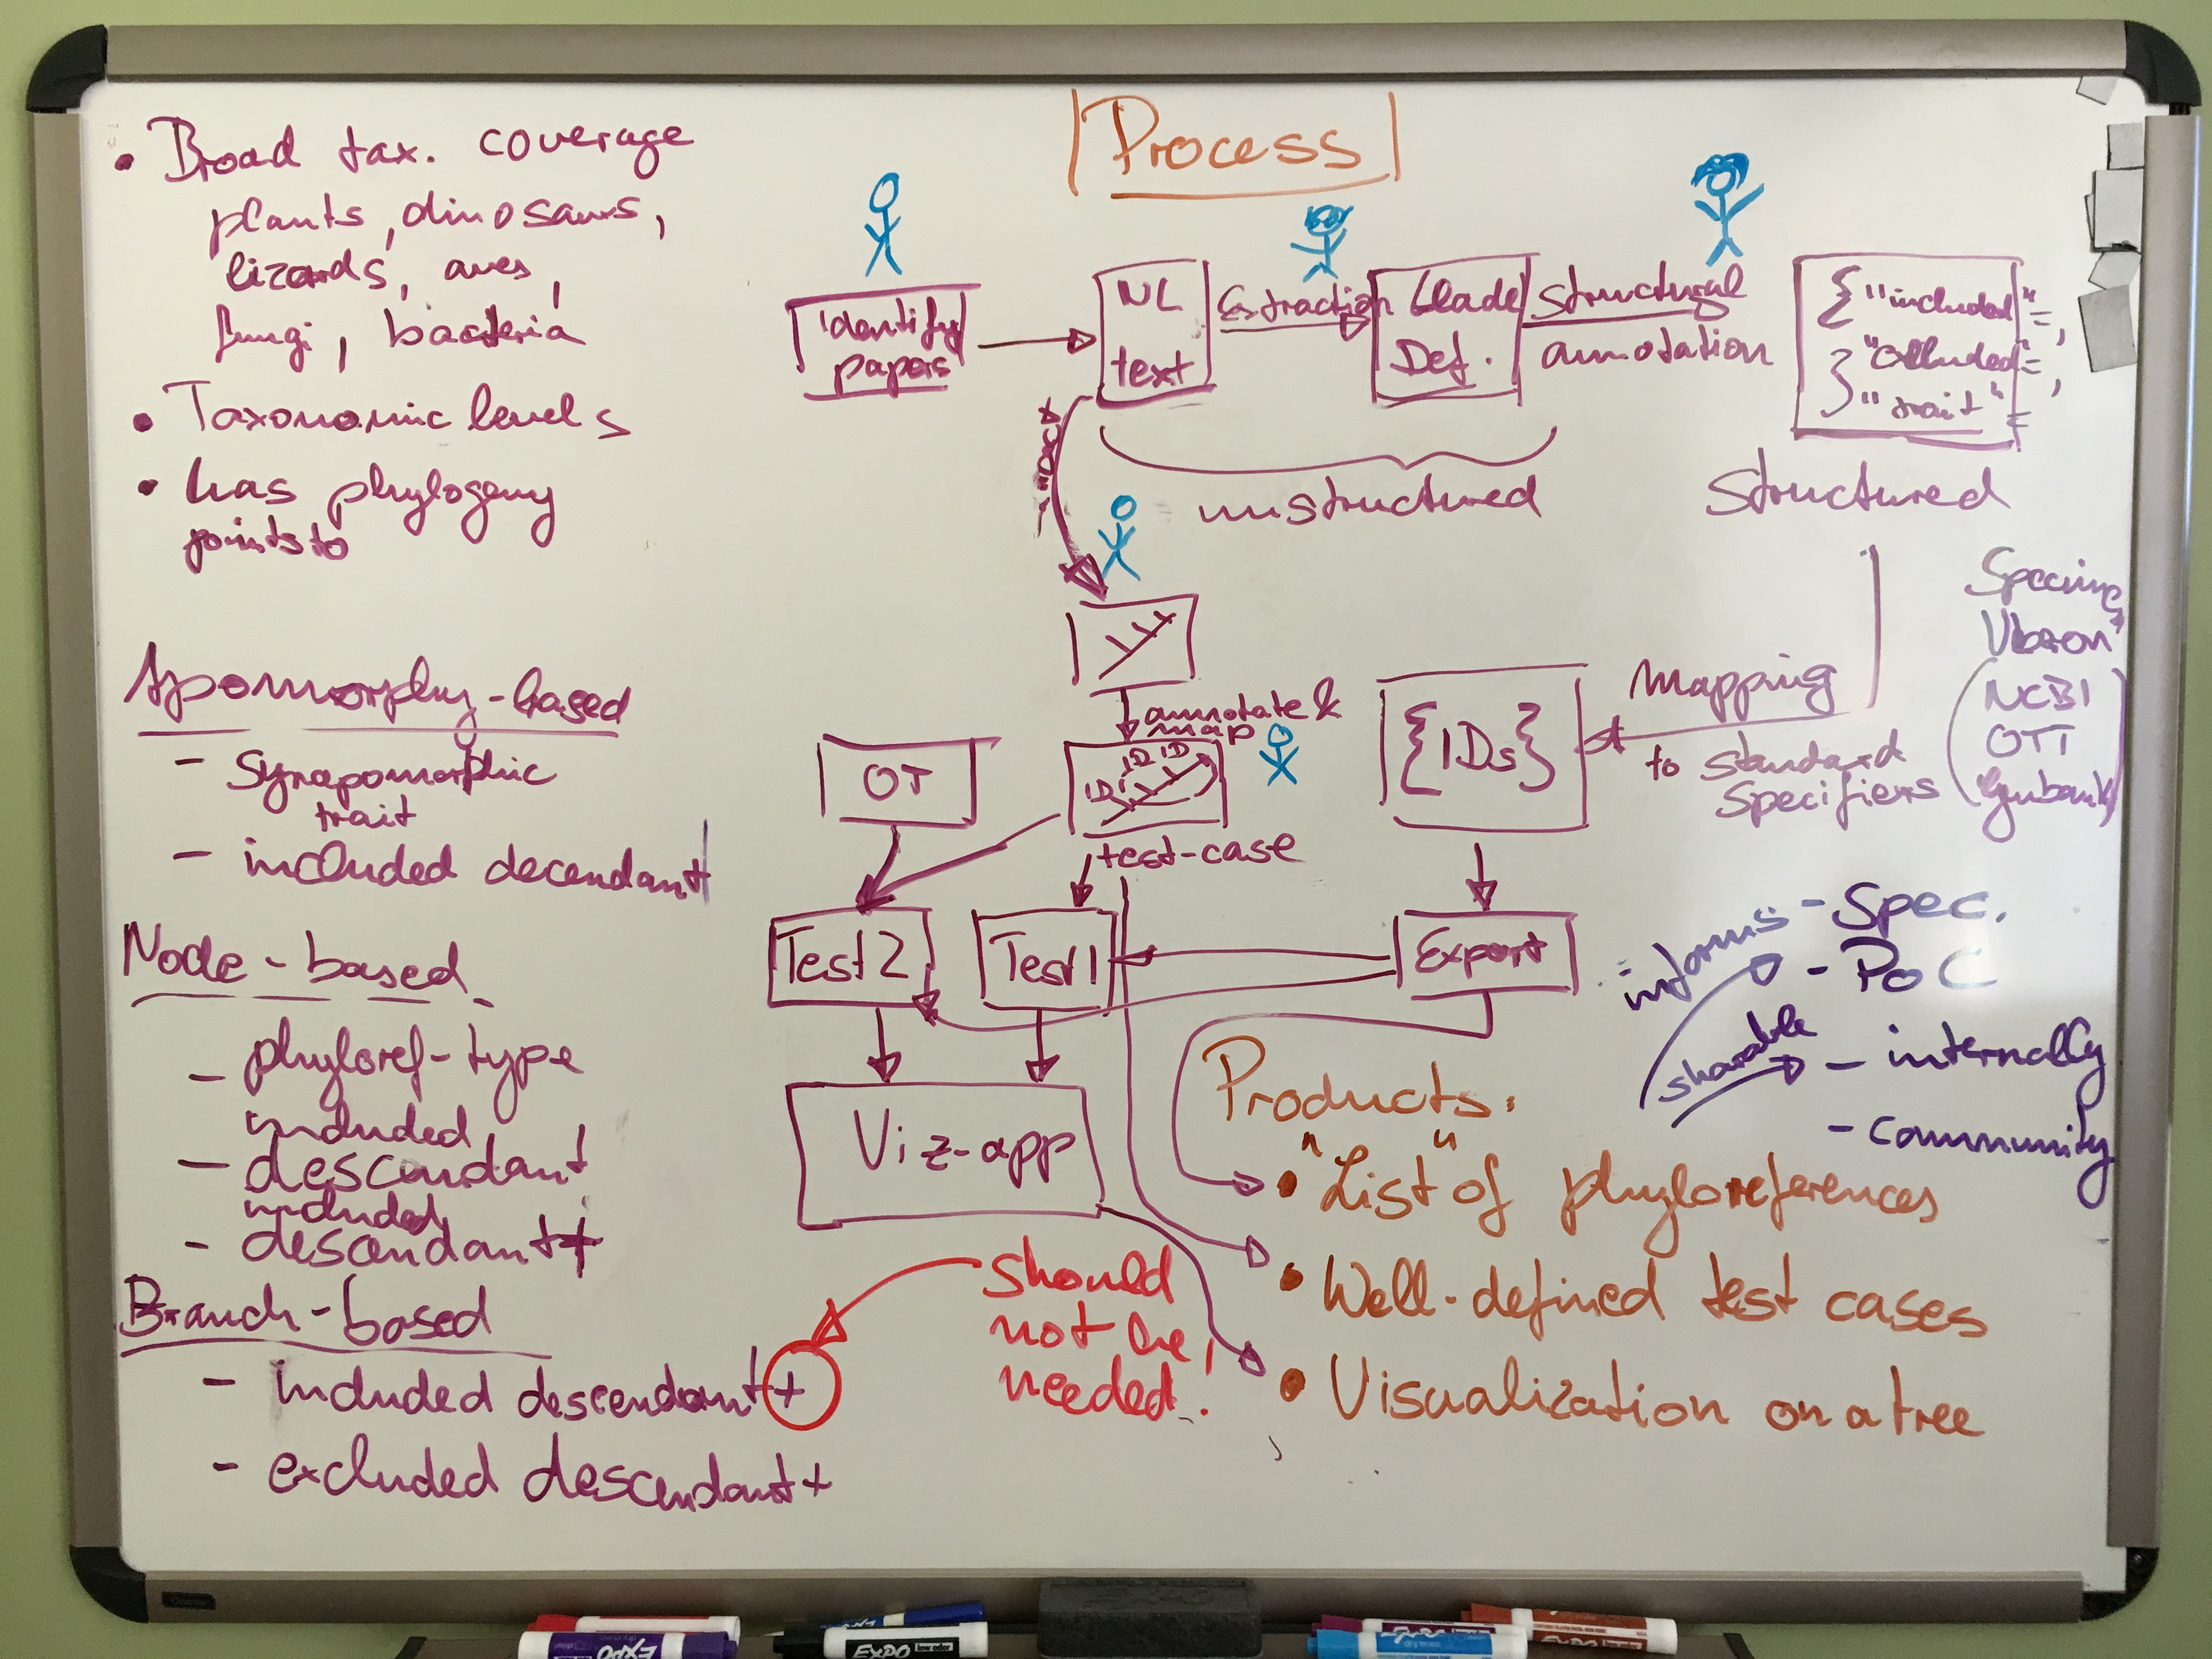 A whiteboard showing our brainstorming on a curation workflow.